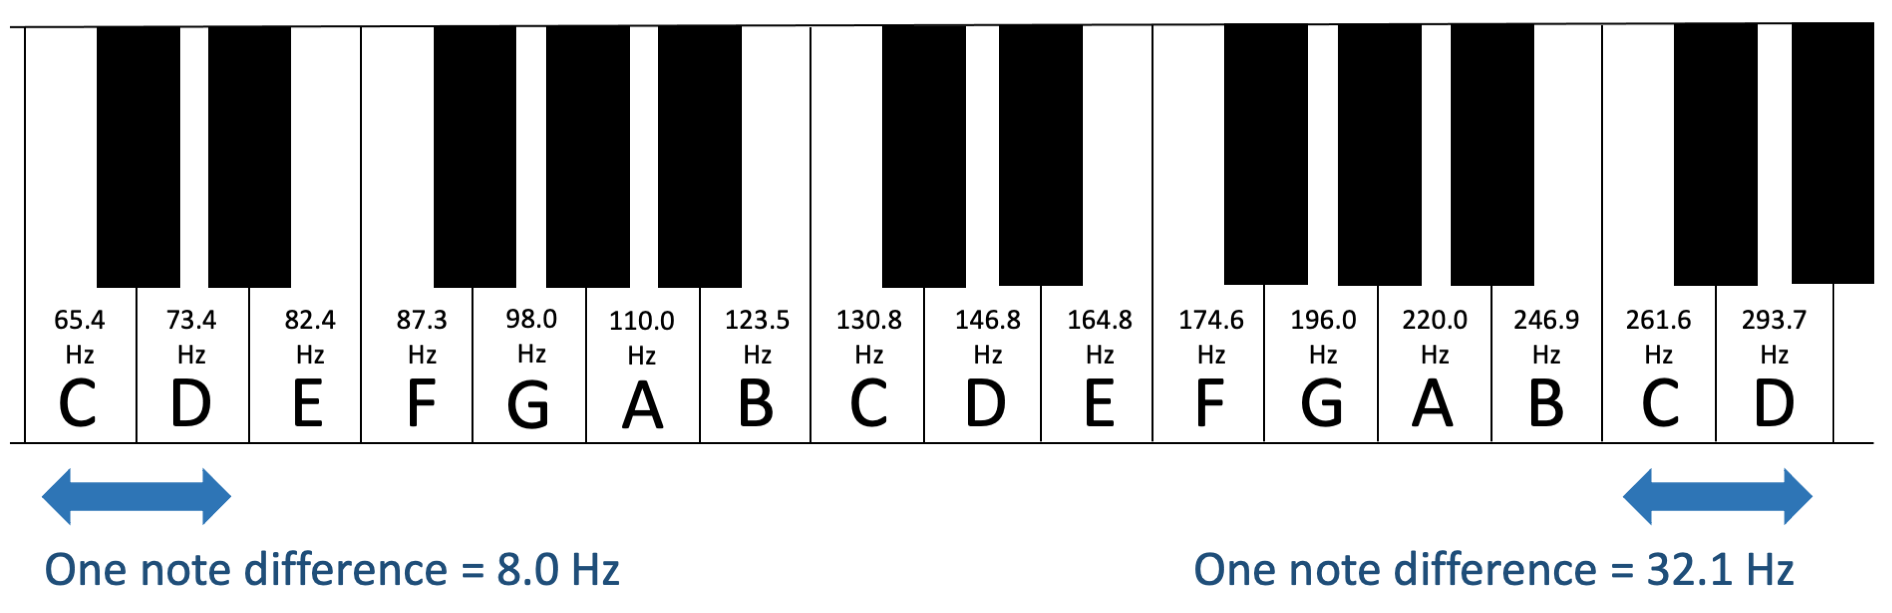 Figure 9.3. The difference in frequency between one note at low and higher octaves on the keyboard